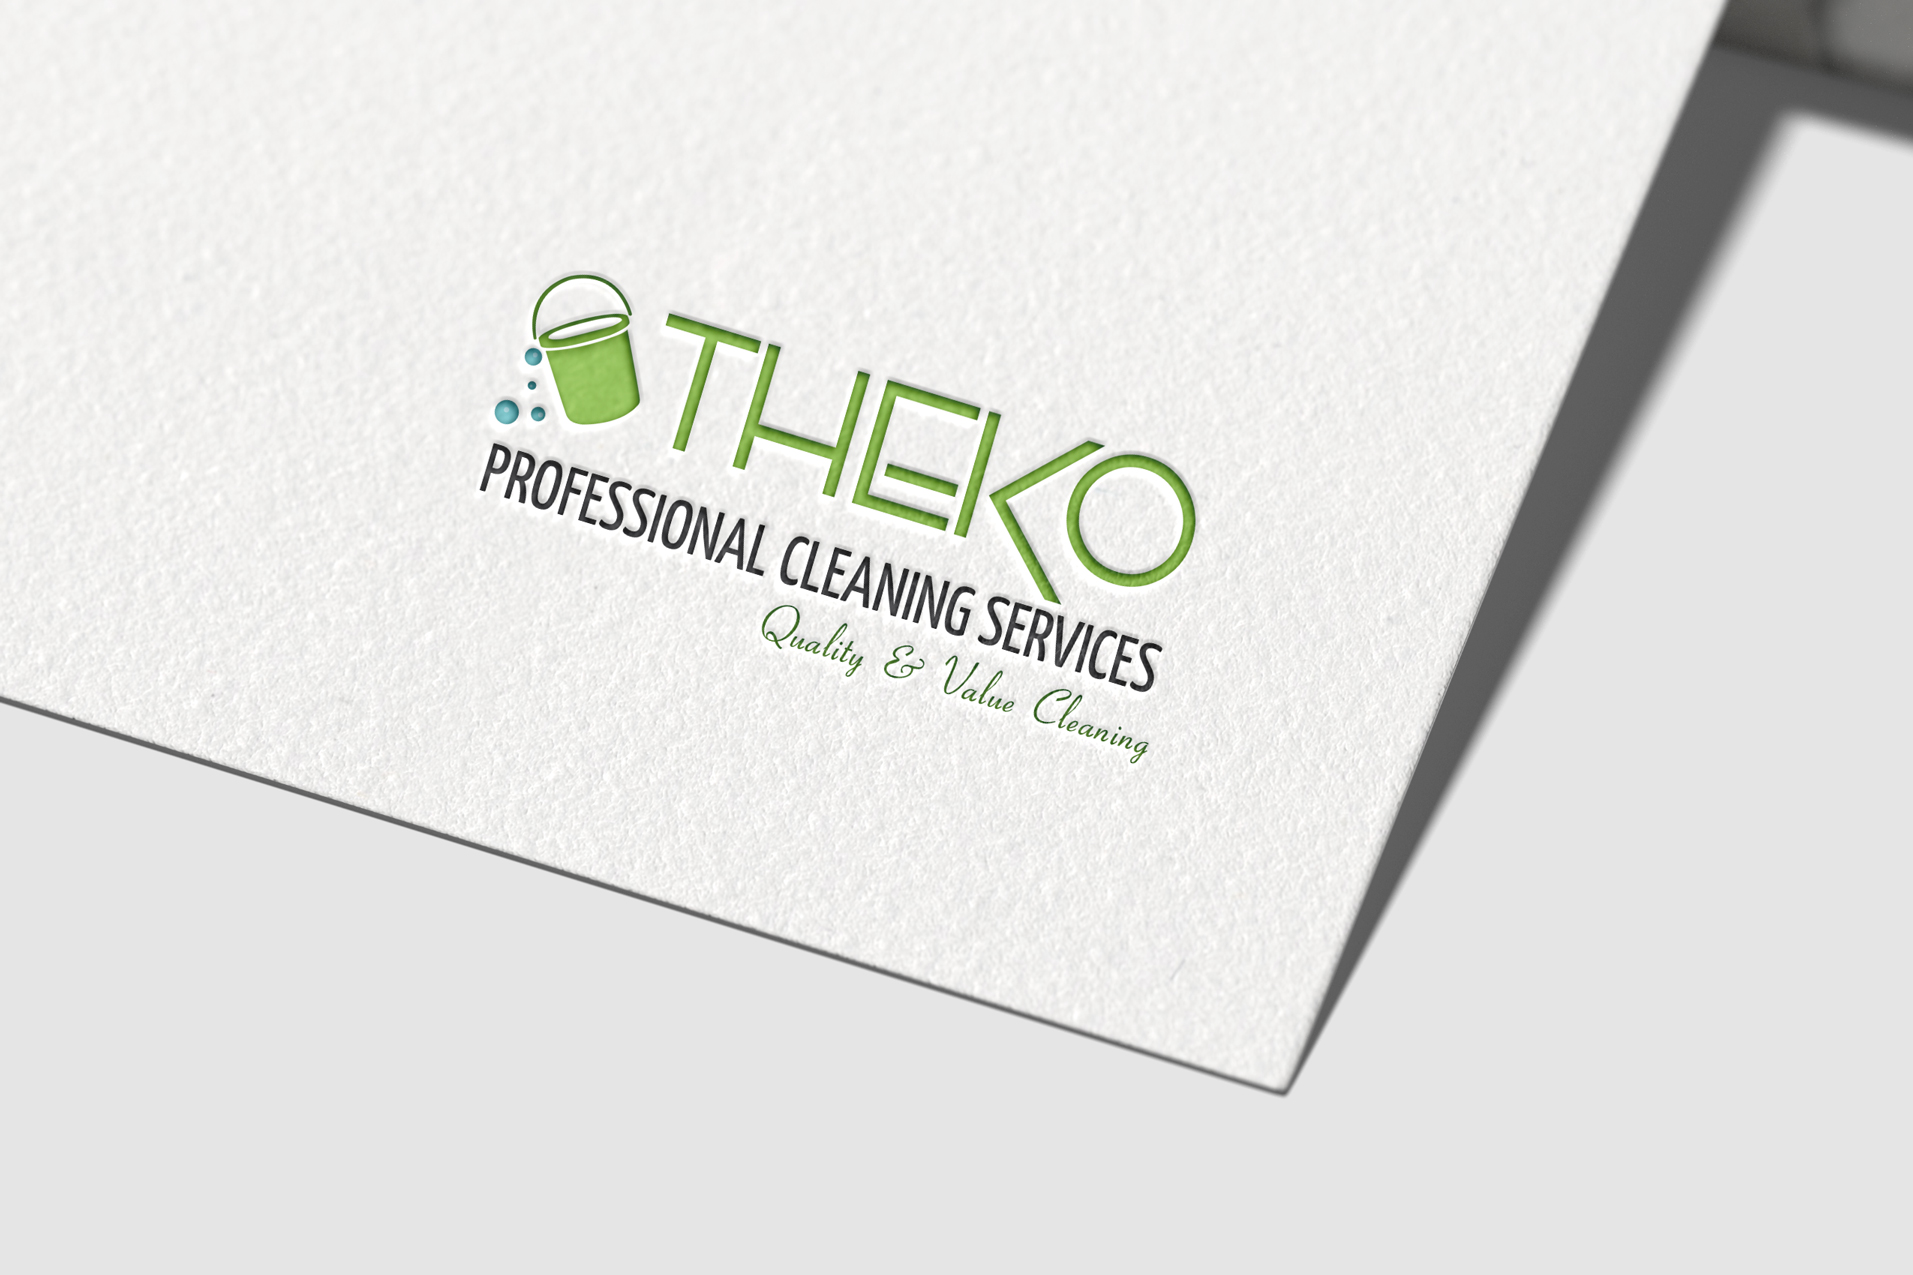 Theko-Professional-Cleaning-logo-on-paper